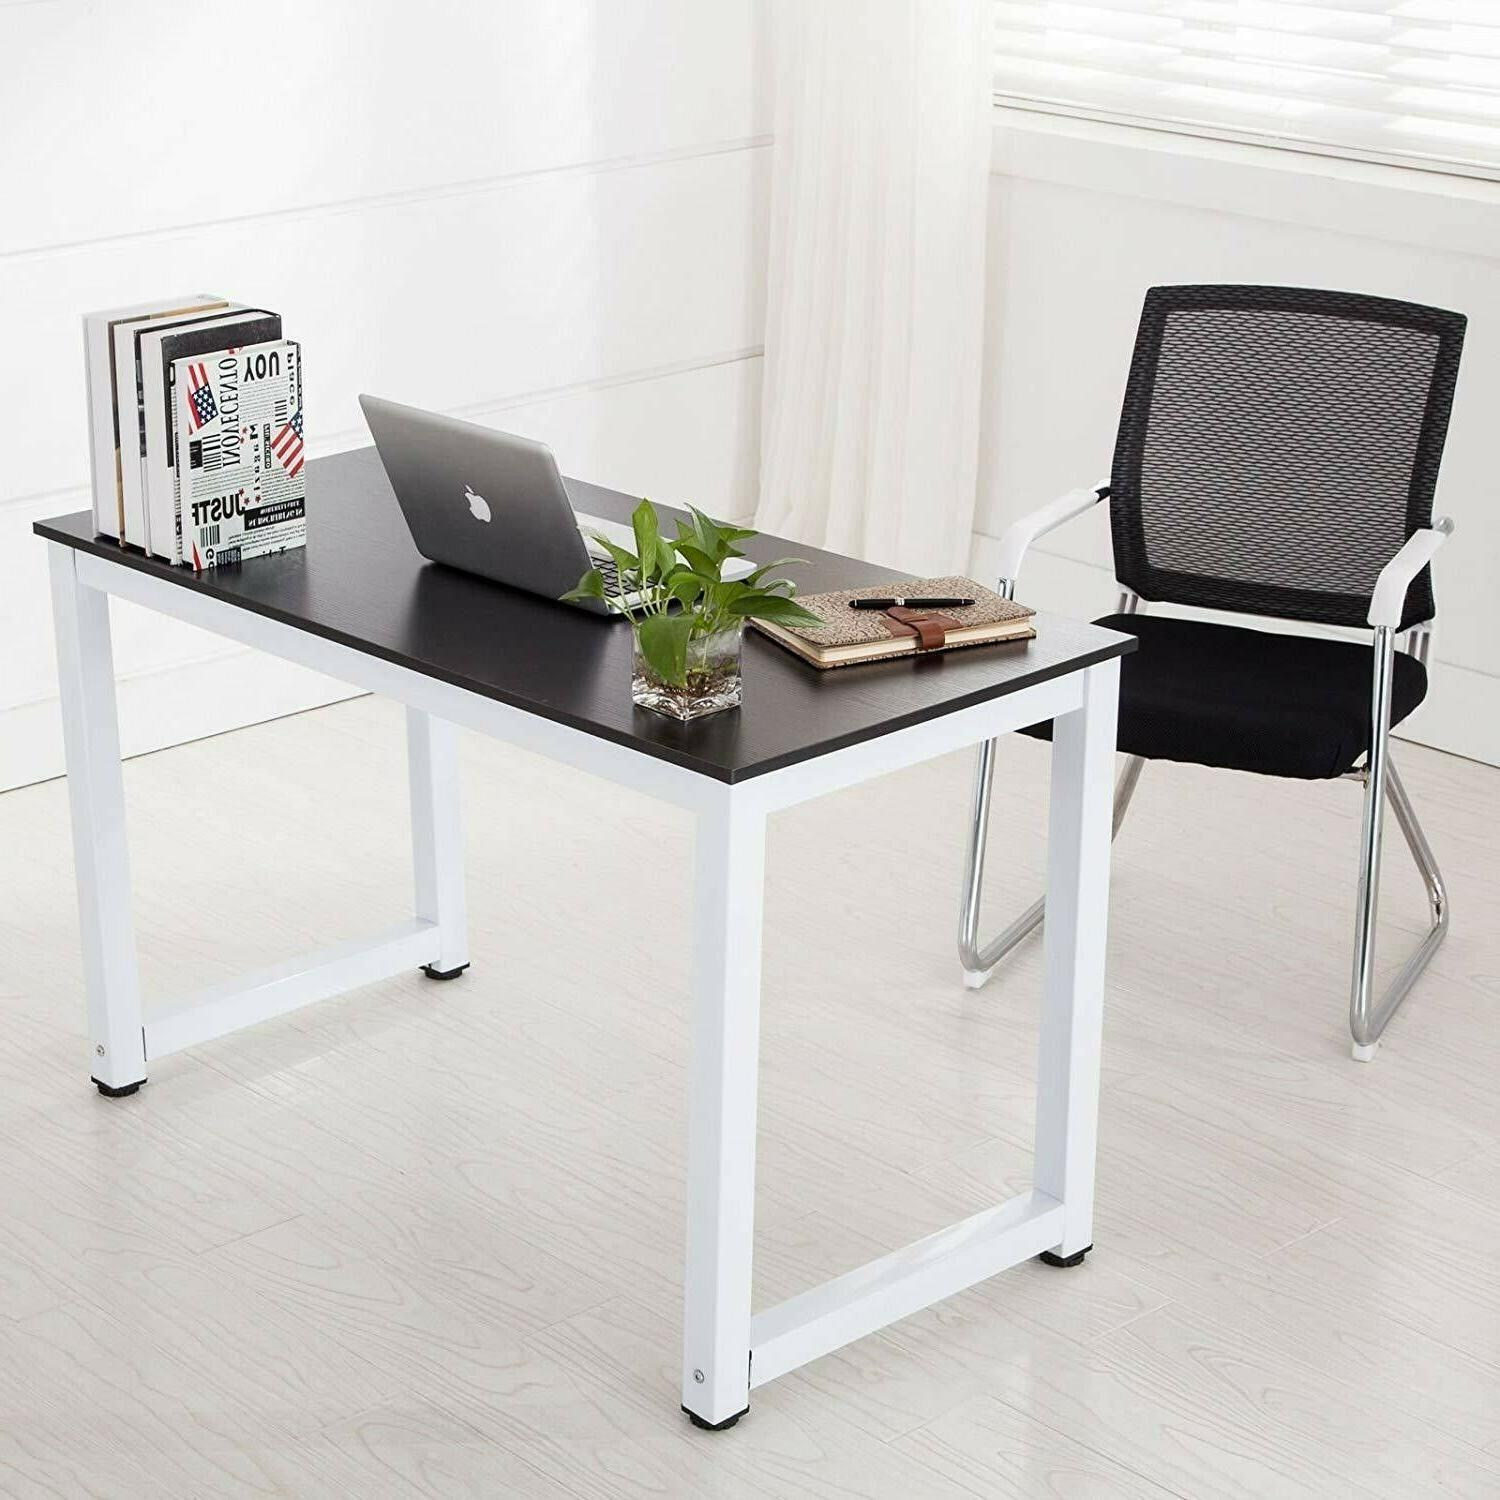 43inch MDF Table Study Home Of